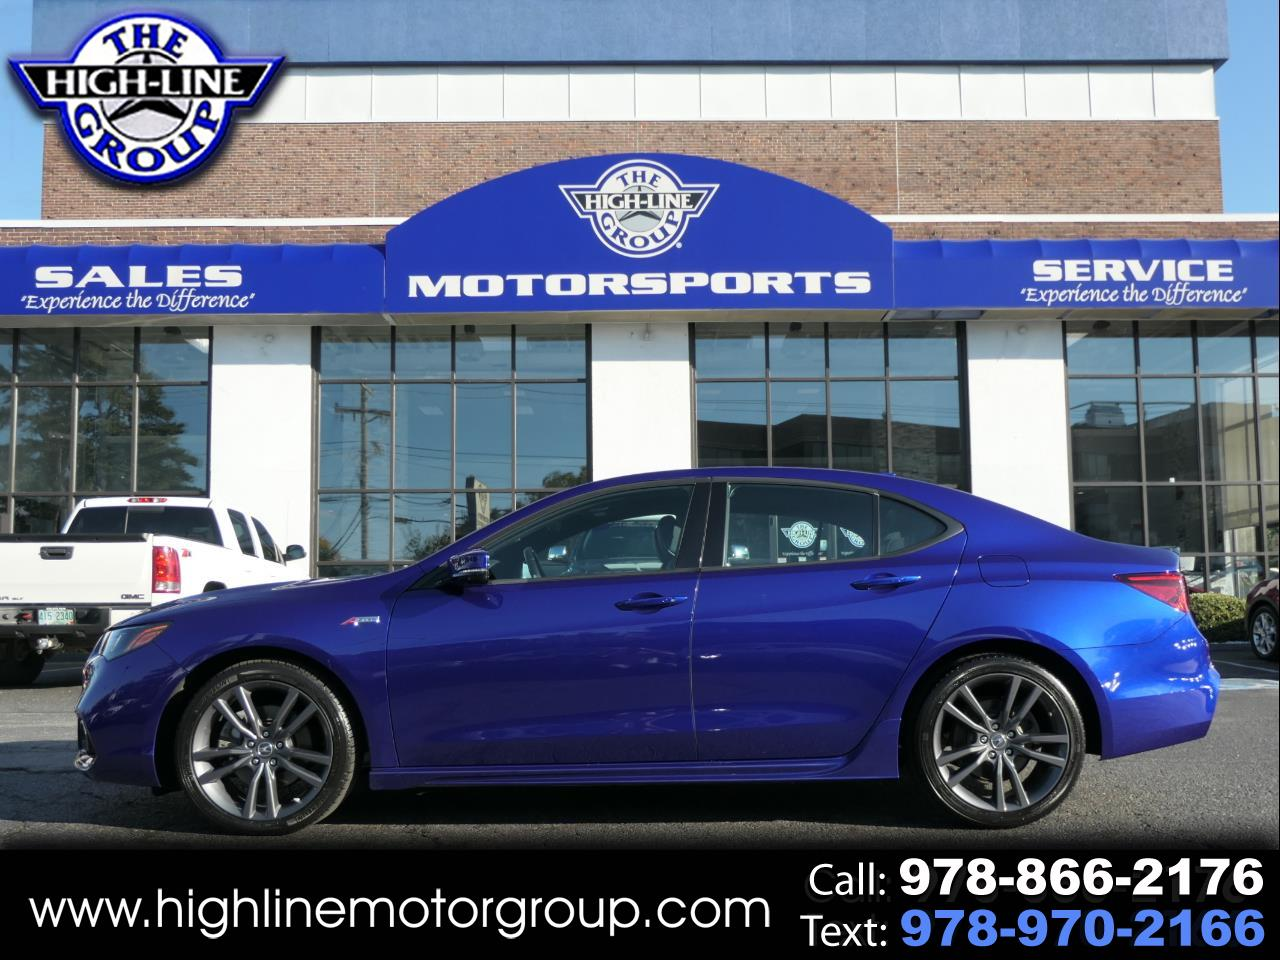 Used 2018 Acura Tlx 3 5l Sh Awd W A Spec Pkg For Sale In Lowell Ma 01851 The Highline Group